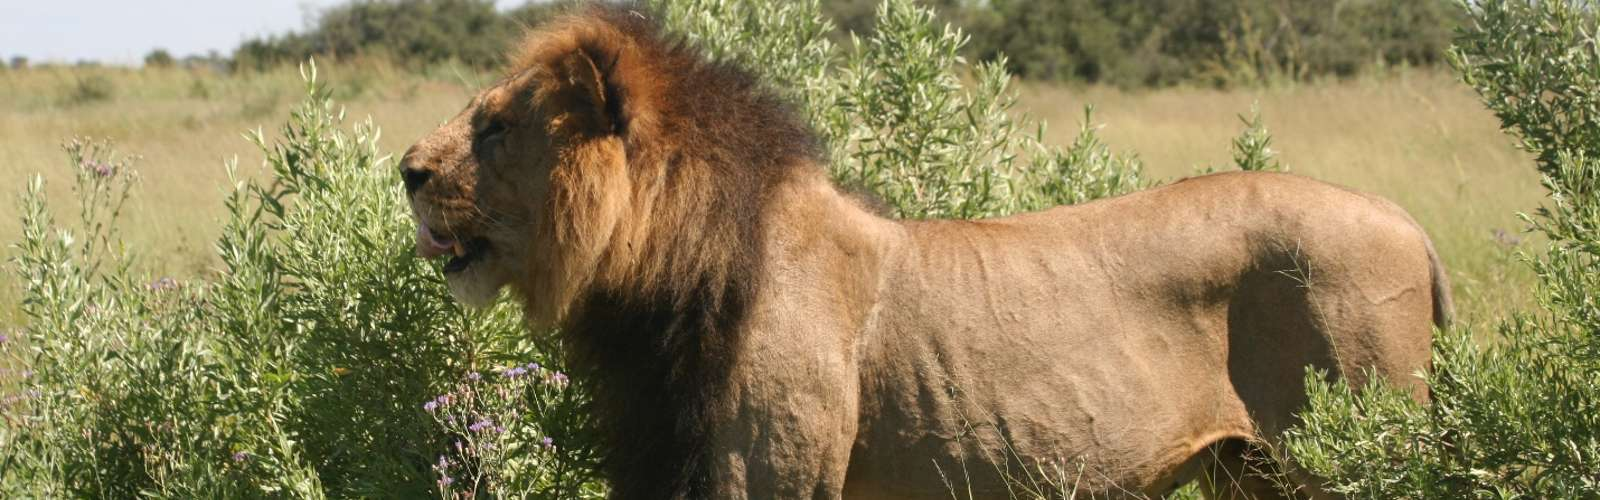 Big male lion, Moremi, Botswana